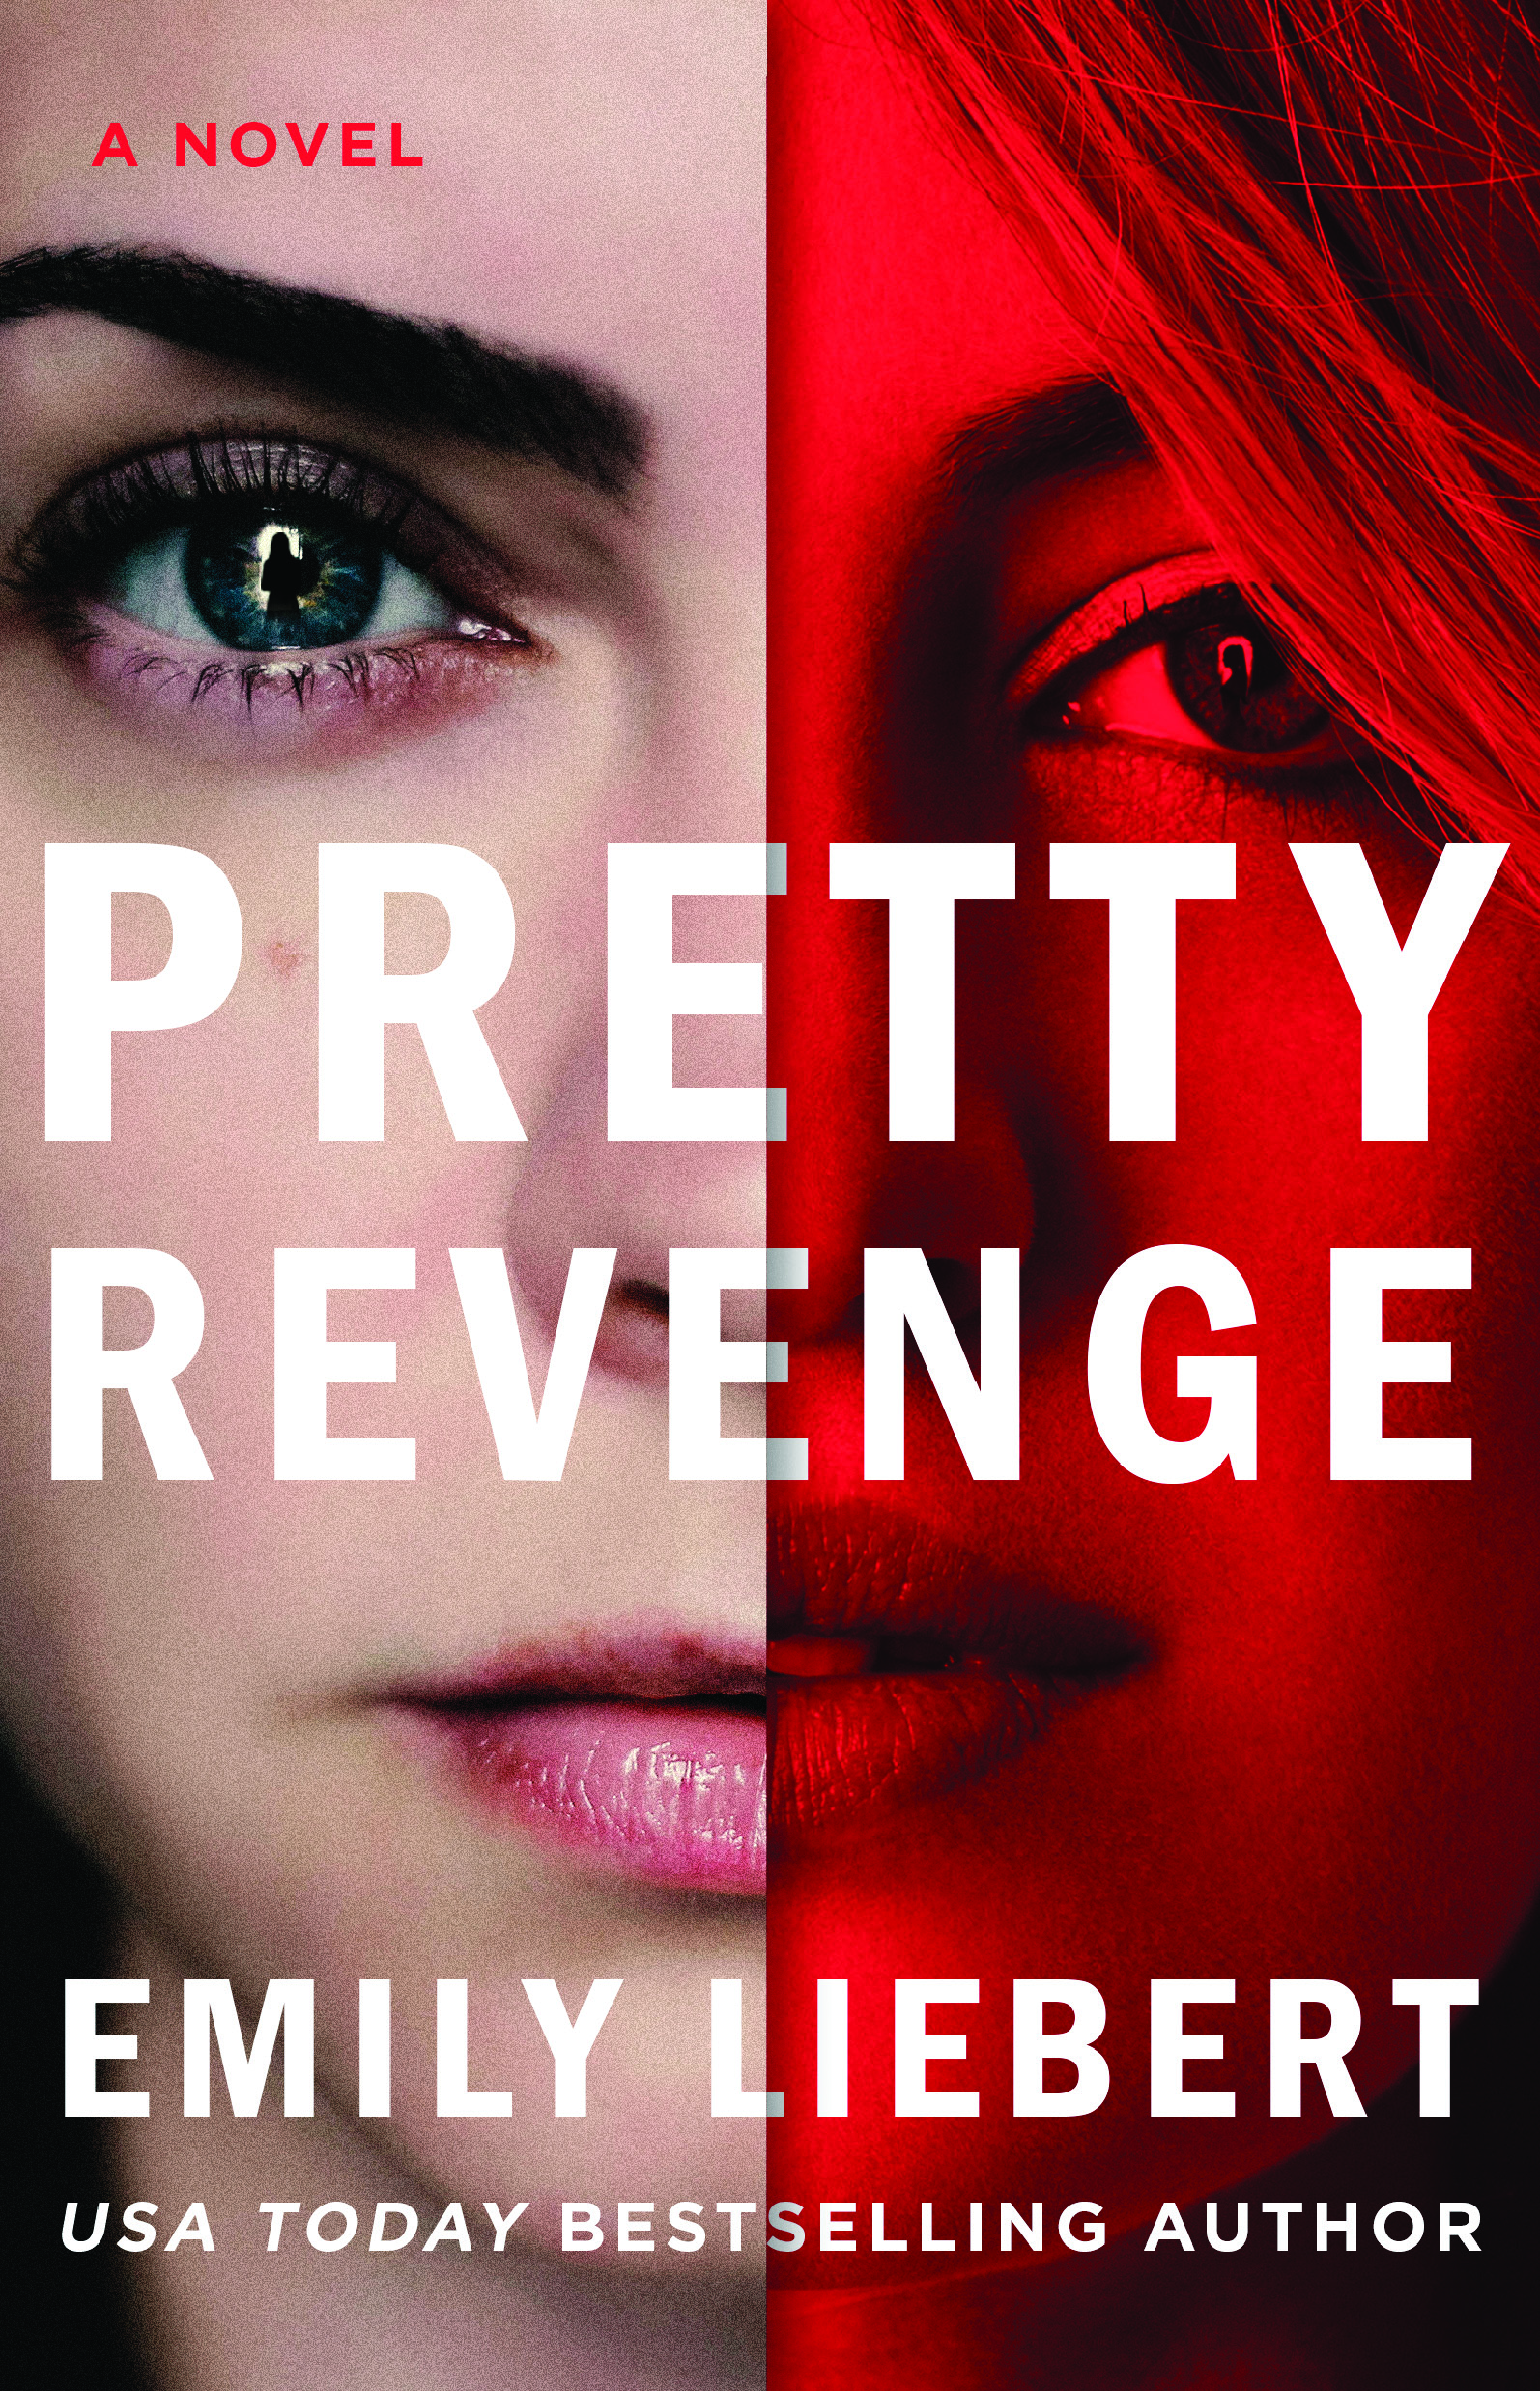 Cover Reveal + Prologue: PRETTY REVENGE by Emily Liebert